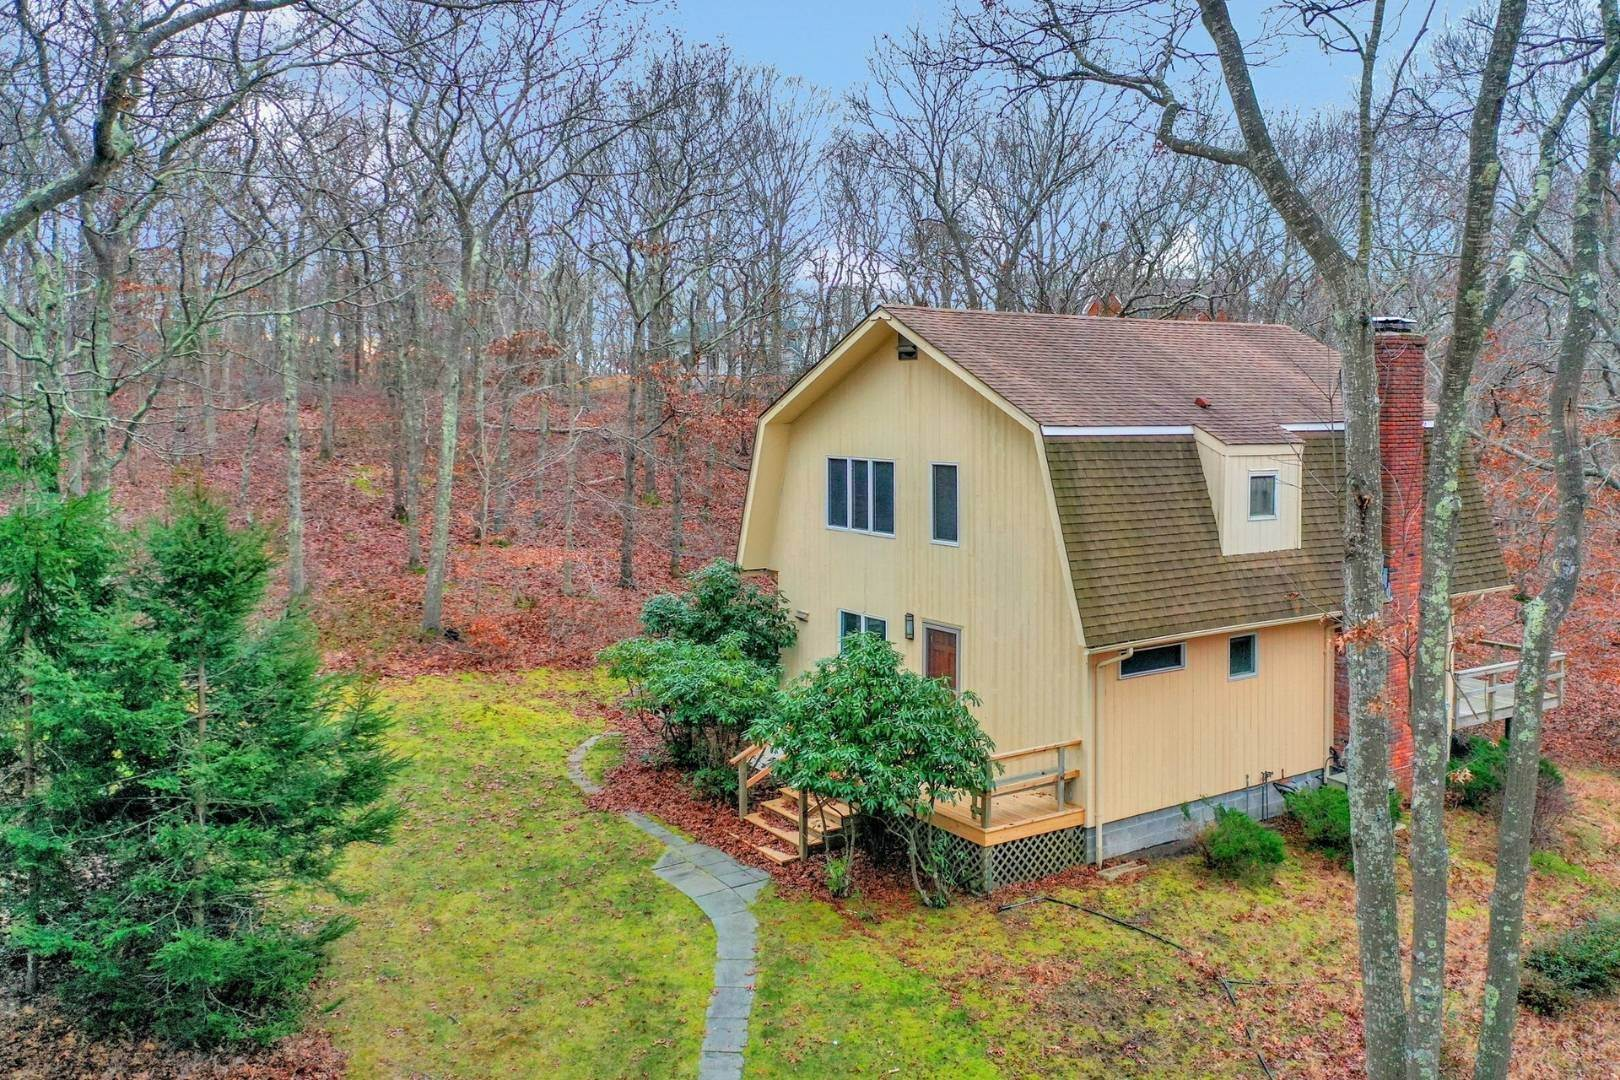 Single Family Home for Sale at 3.7 Acre Contemporary With Compound Potential 56/58 Three Mile Harbor Hog Creek Road, 56, East Hampton, NY 11937